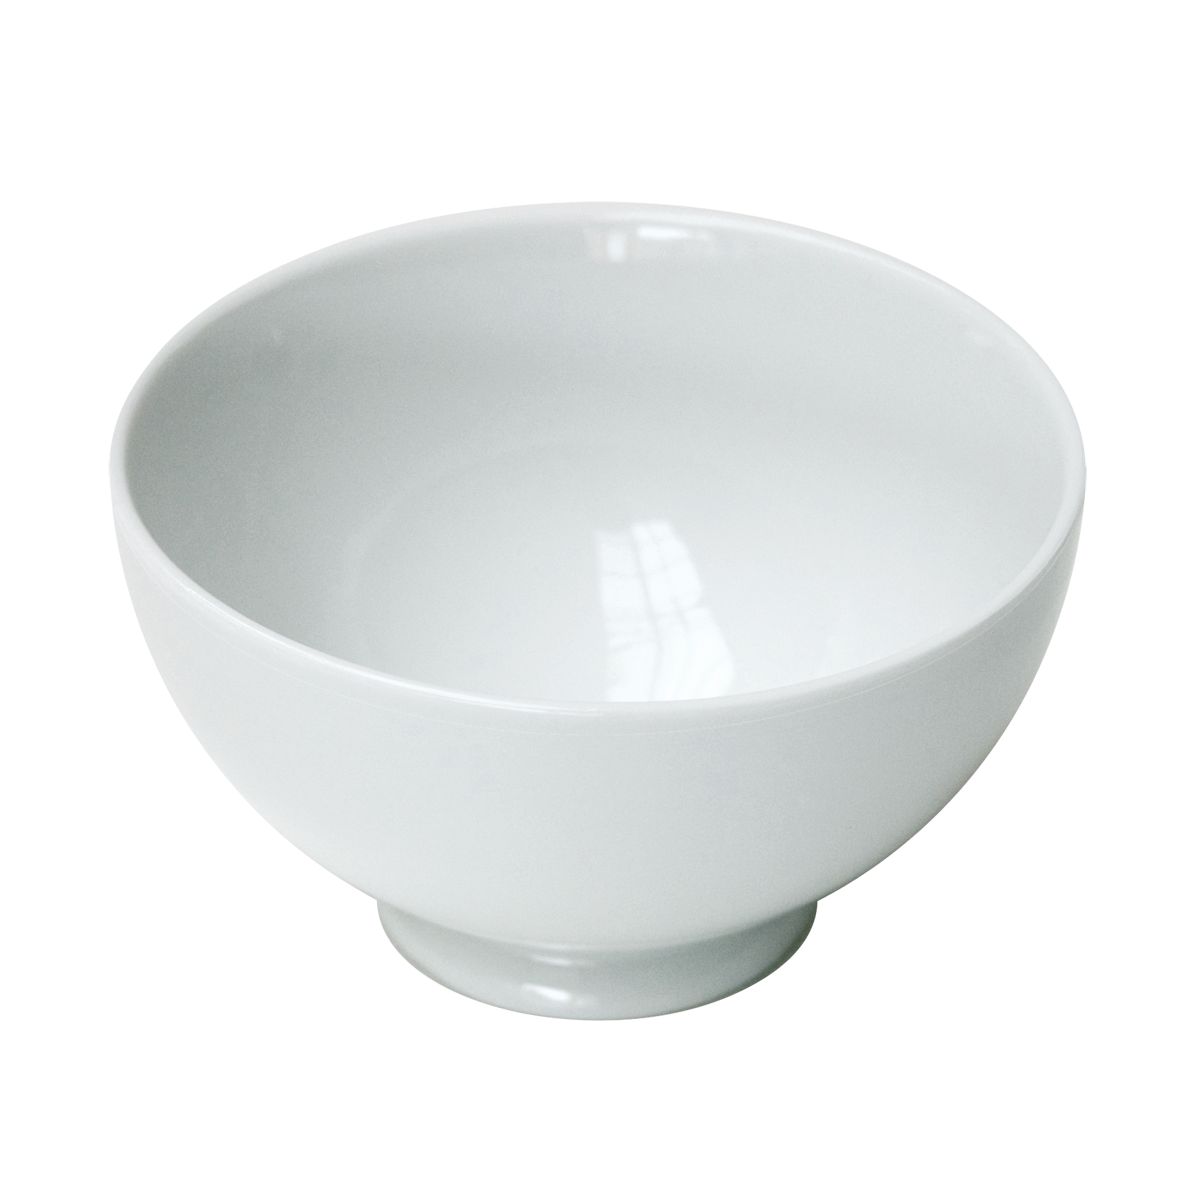 Bowl porselein wit 12,5x7,5cm (medium)